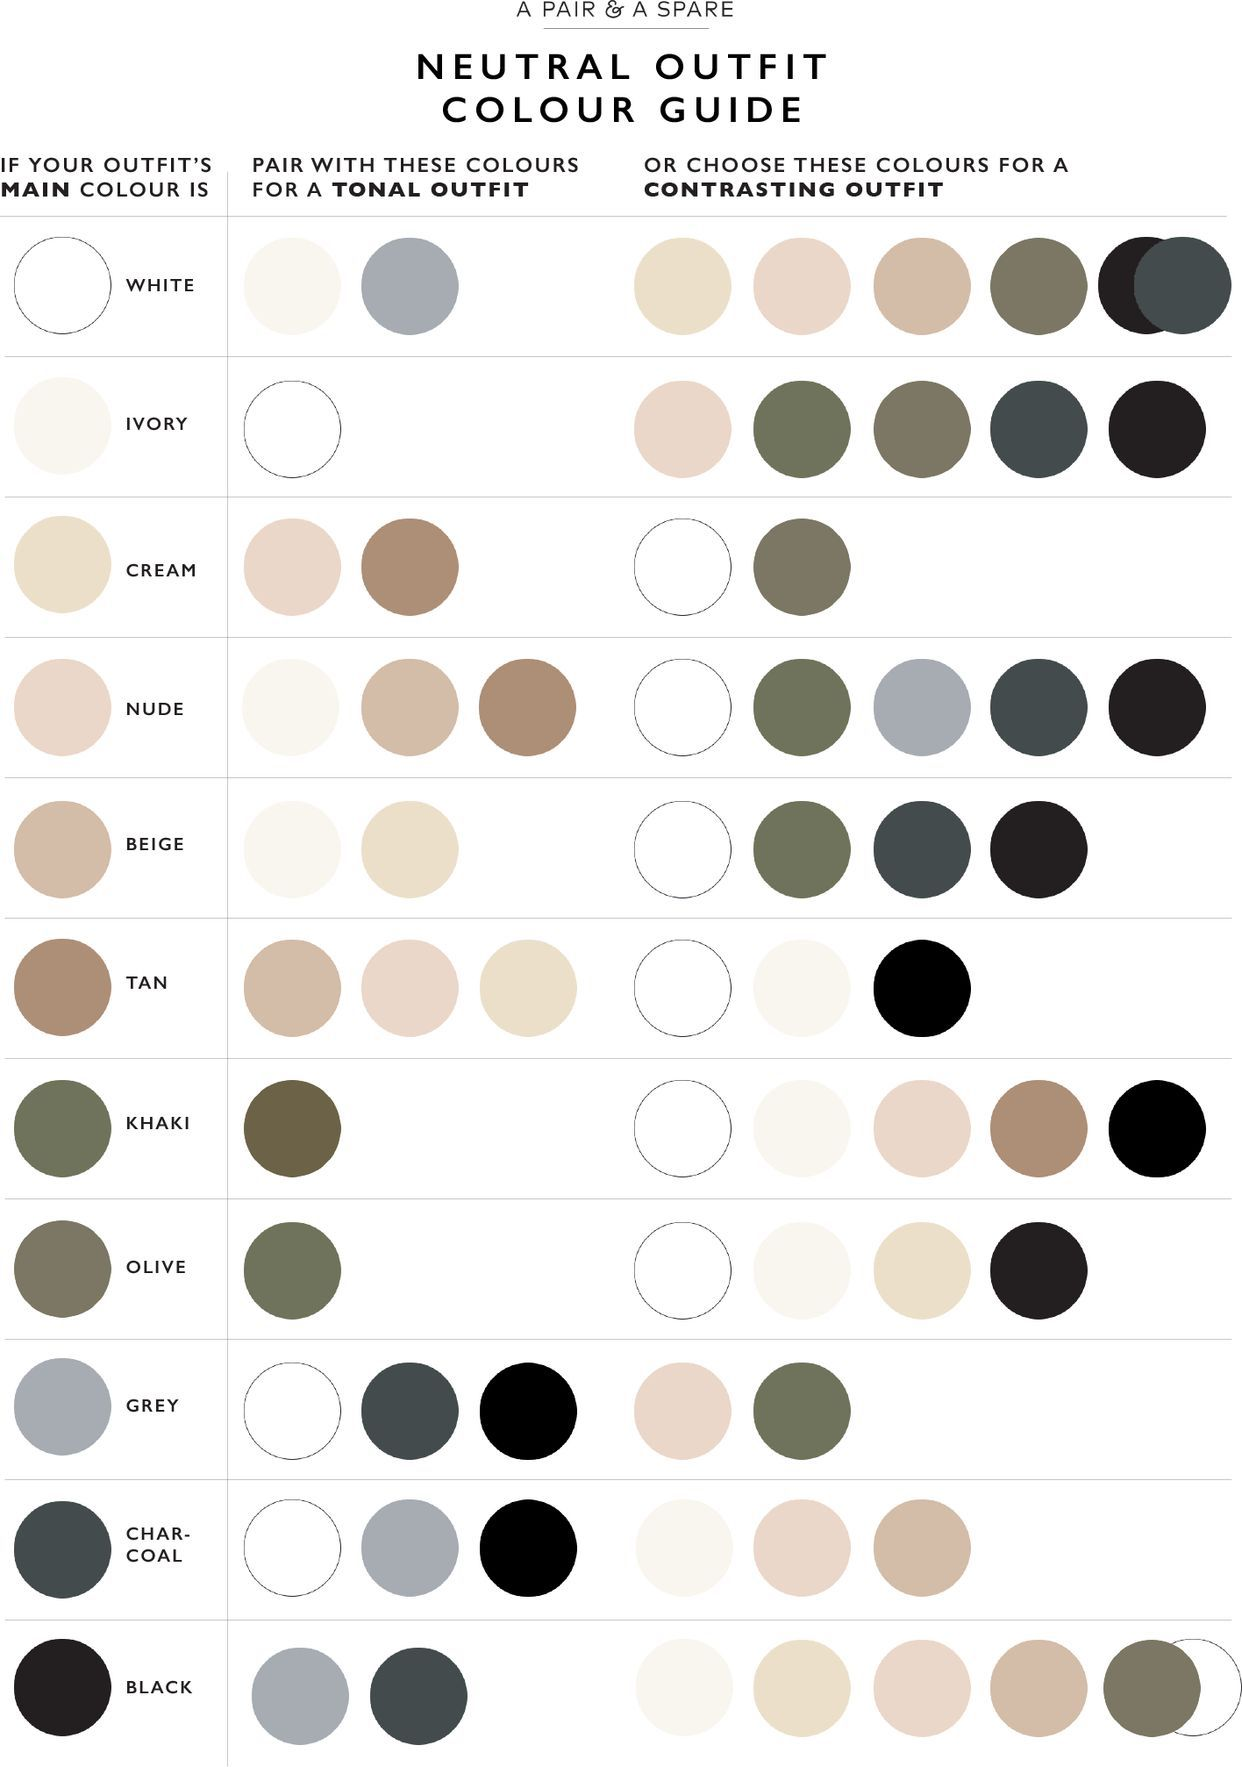 Photo of Match colors (left side is the primary color)